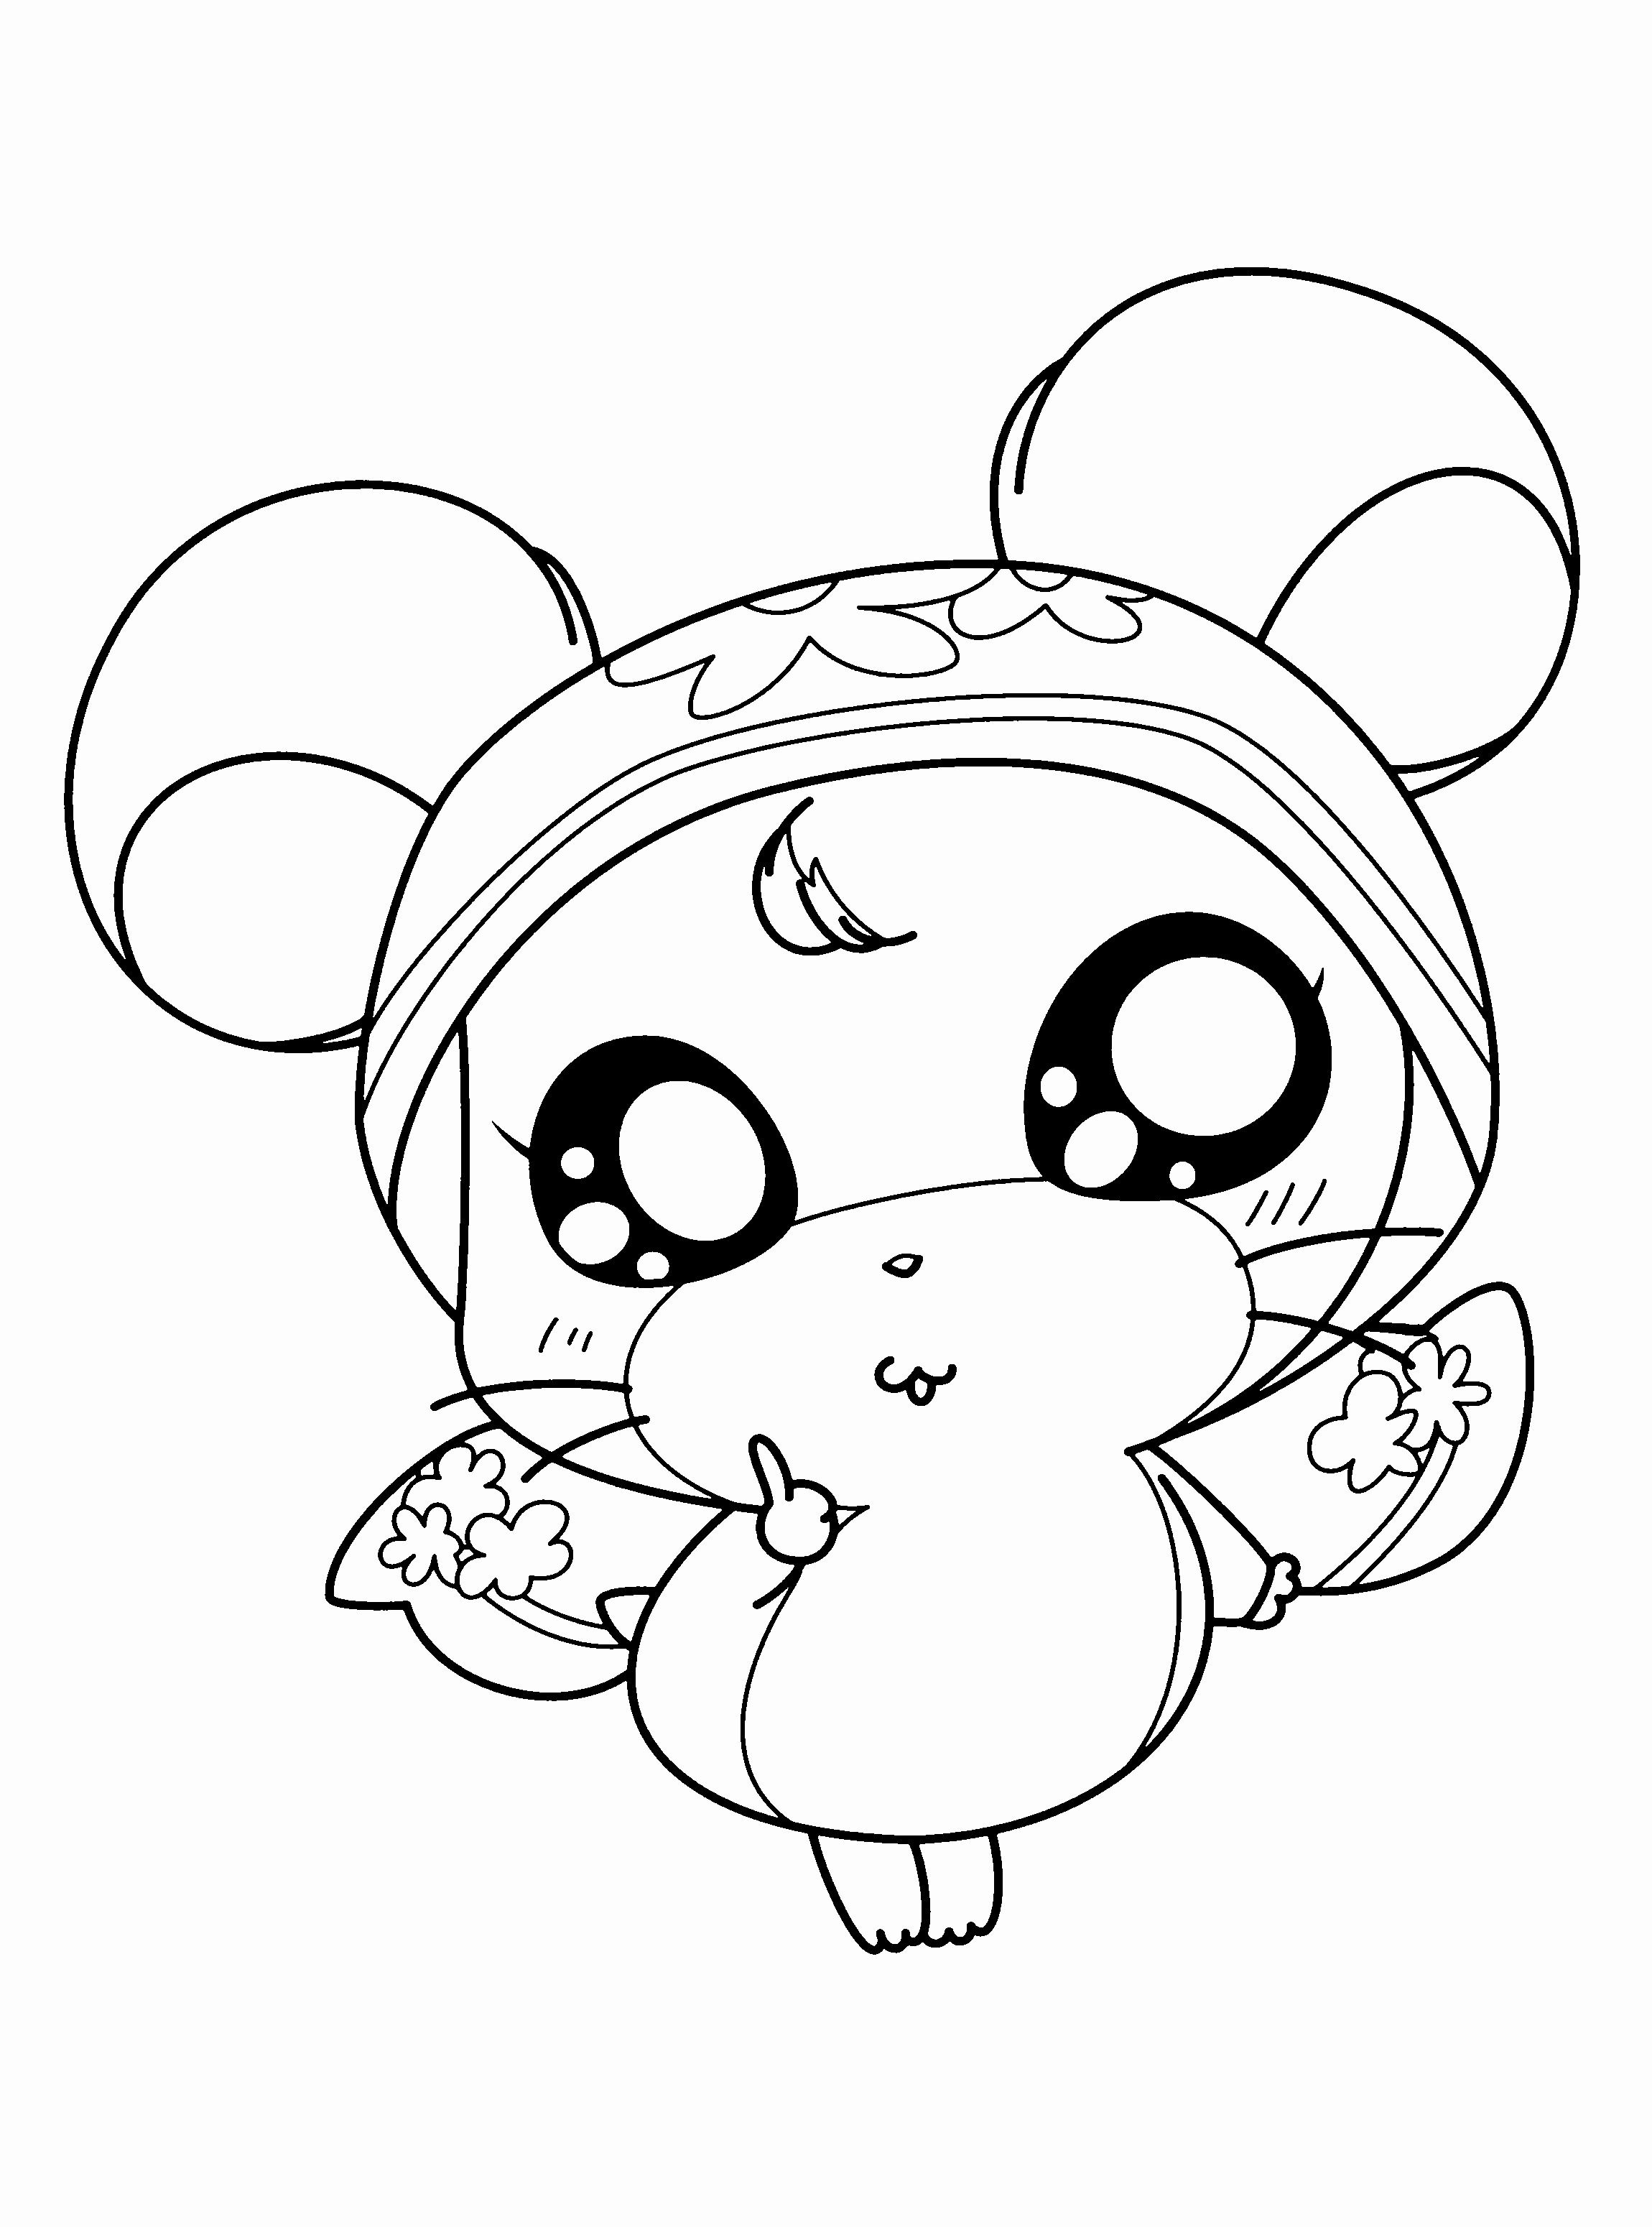 hard pokemon coloring pages pokemon f 3 coloring pages coloring book hard coloring pages pokemon